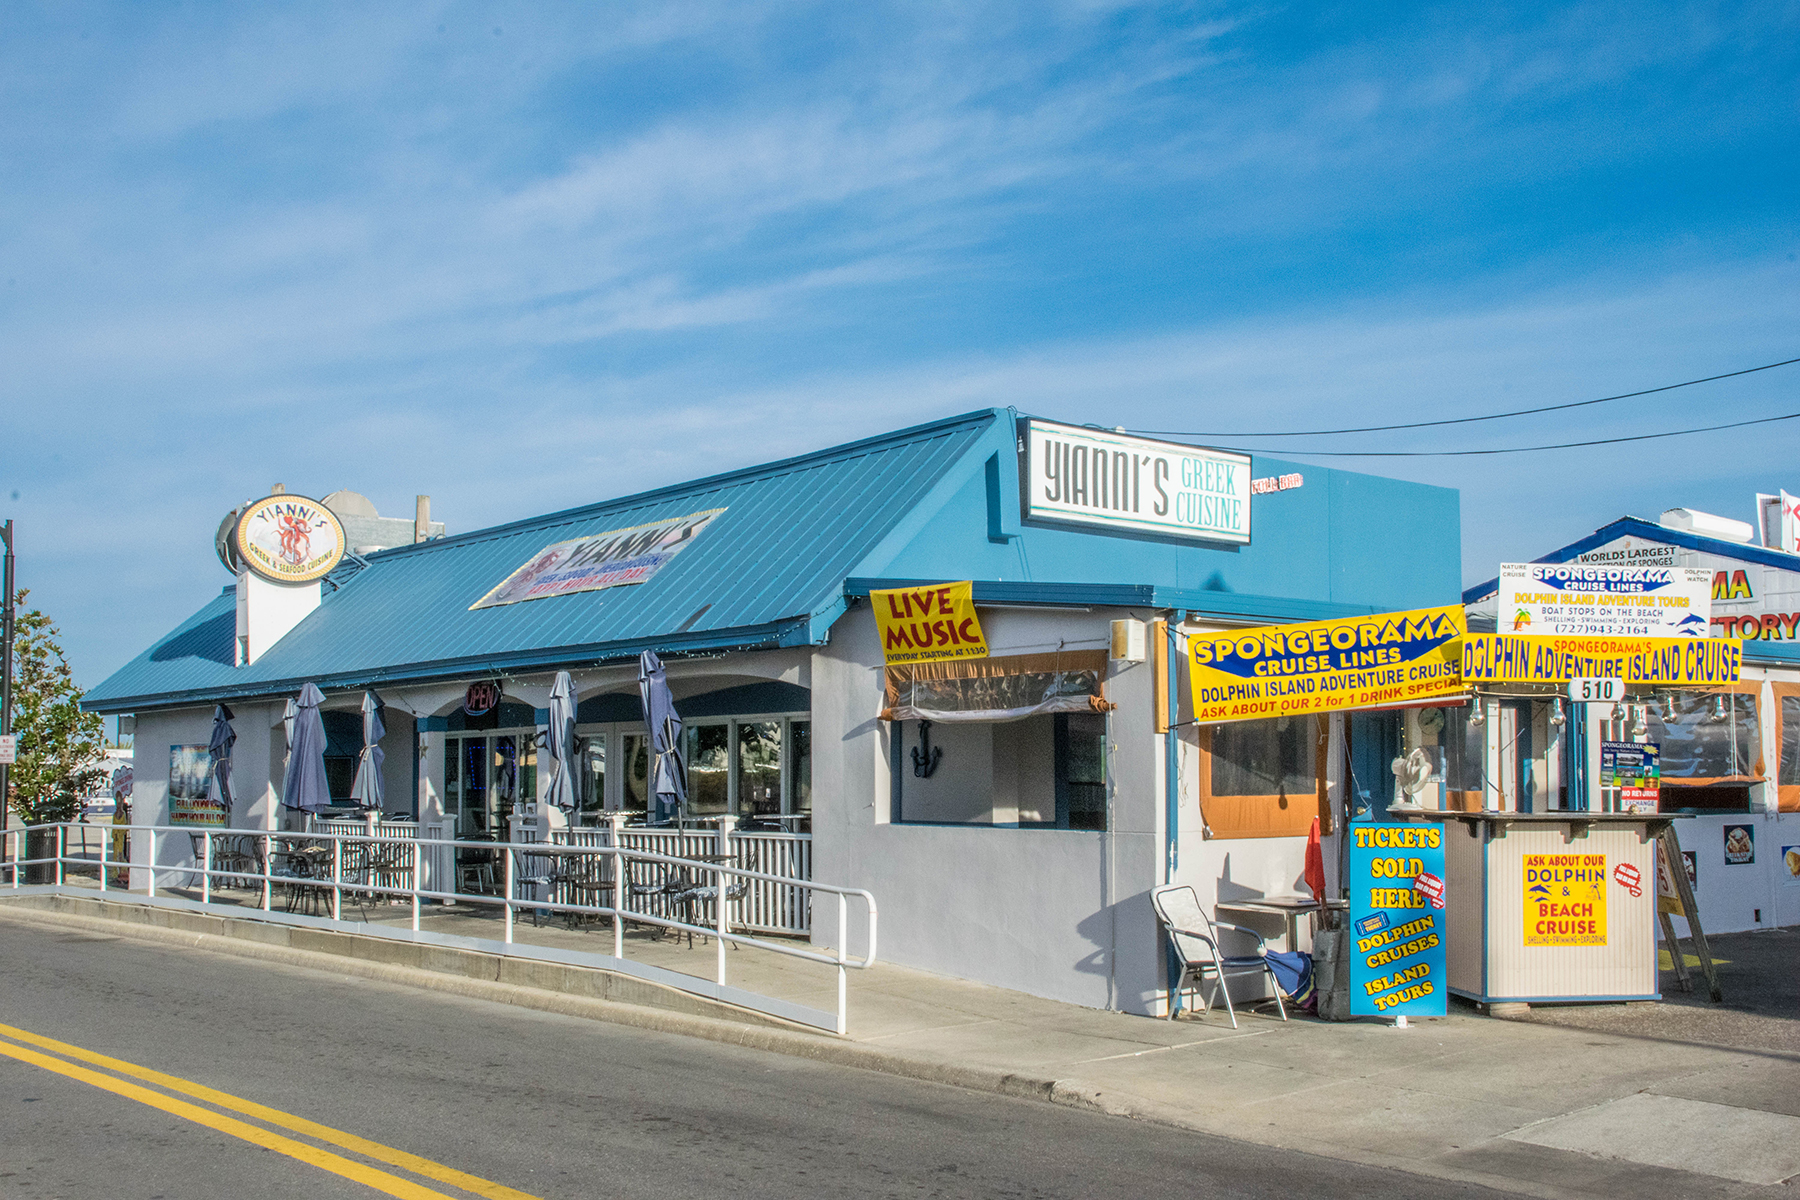 Commercial for Sale at TARPON SPRINGS 510 Dodecanese Blvd, Tarpon Springs, Florida 34689 United States